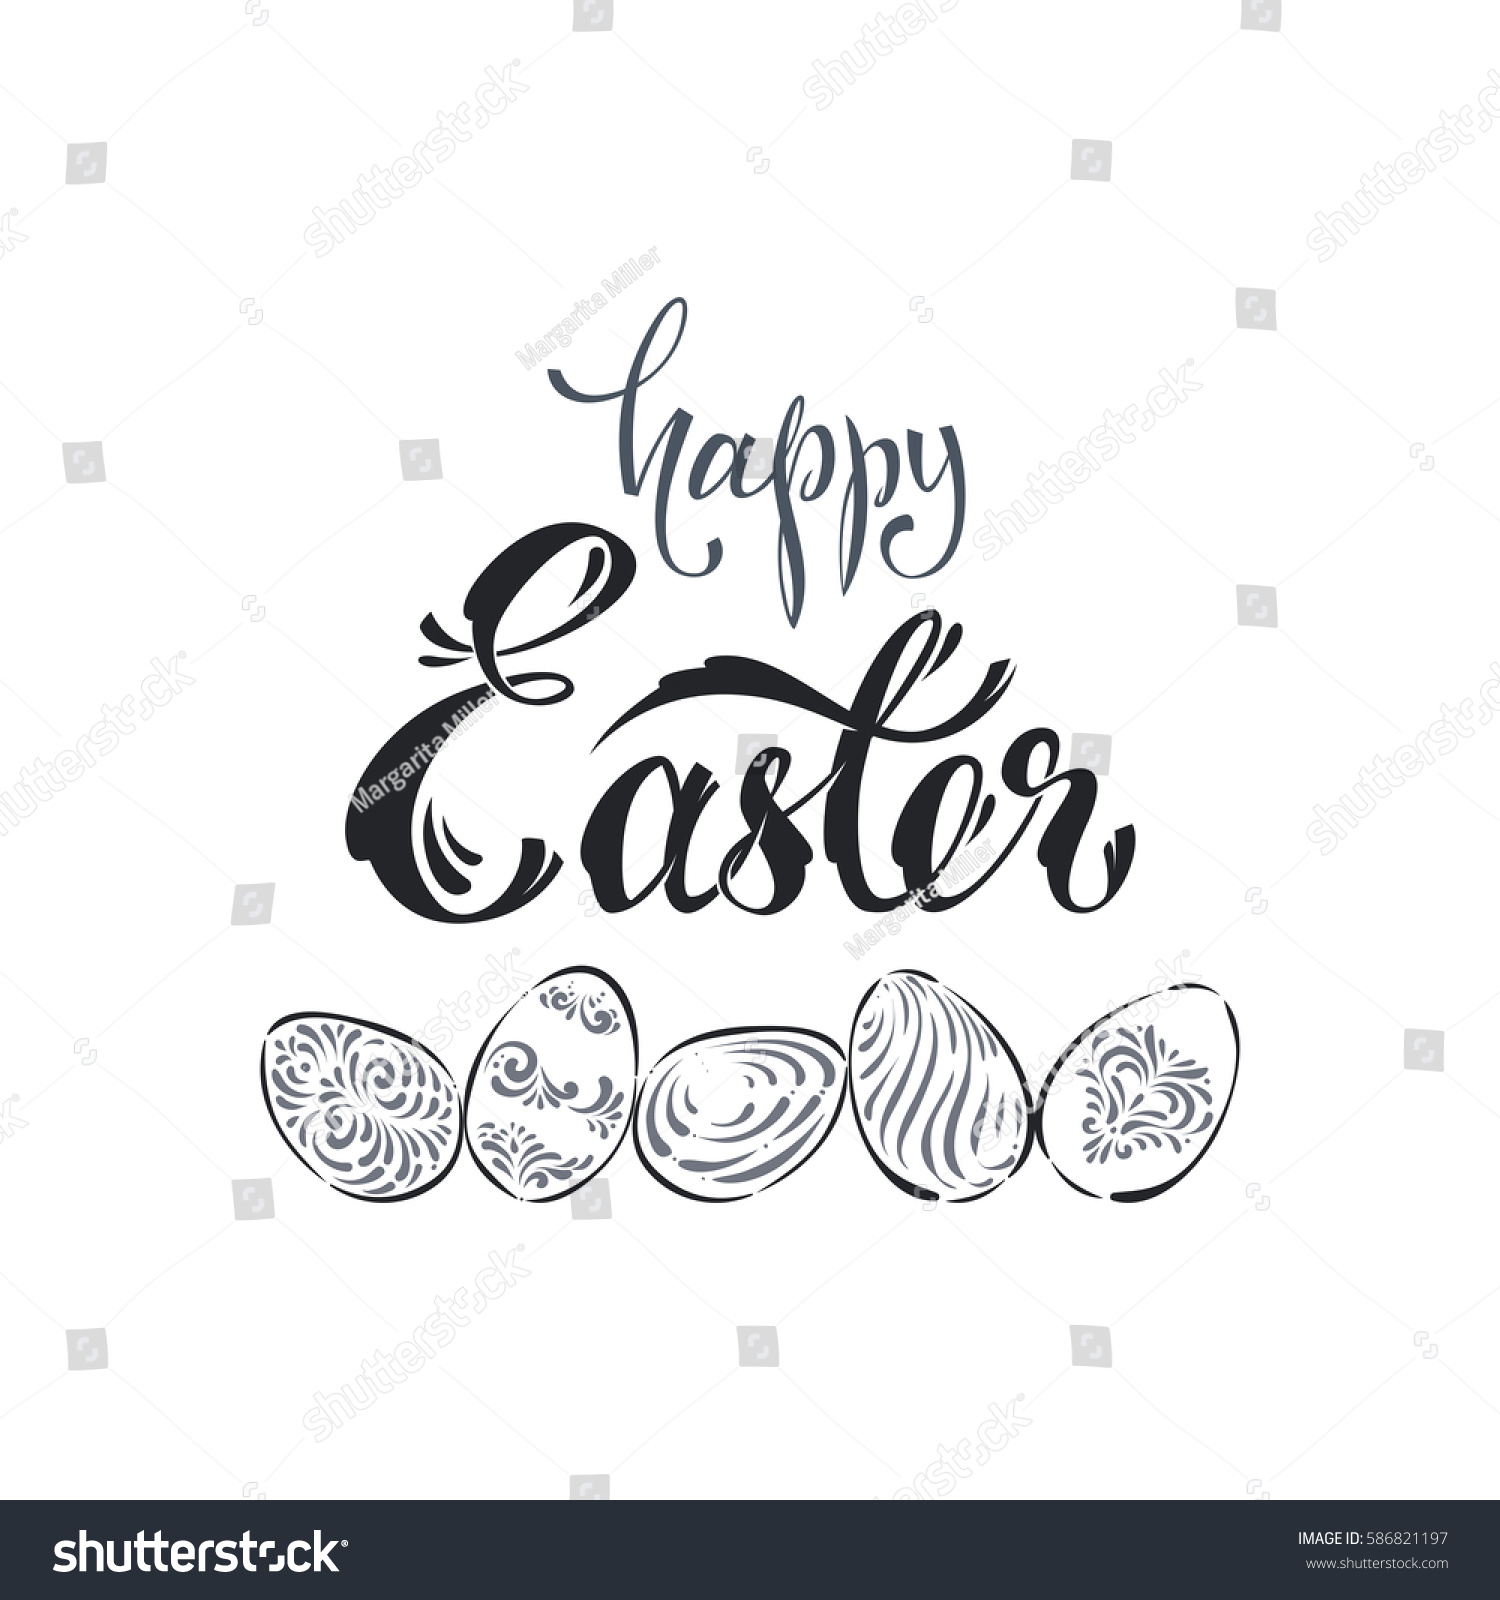 Calligraphy happy easter eggs patterns isolated stock